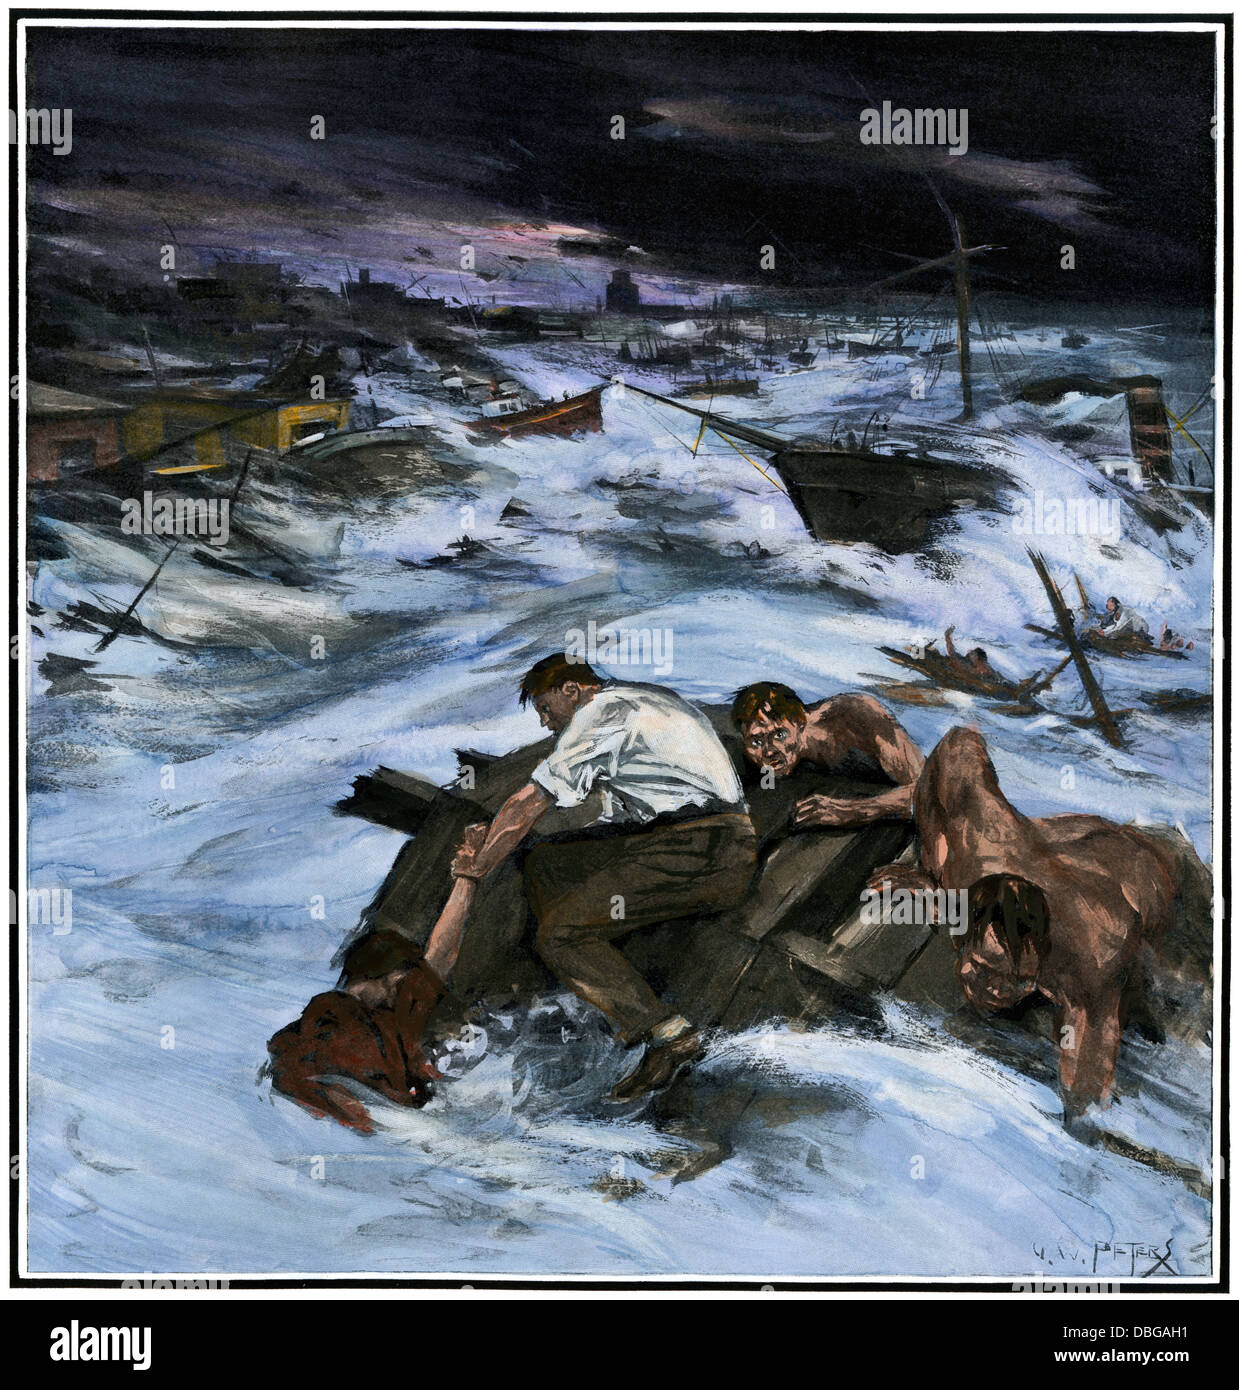 Victims of the Galveston hurricane clinging to wreckage, 1900. Hand-colored halftone reproduction of an illustration - Stock Image